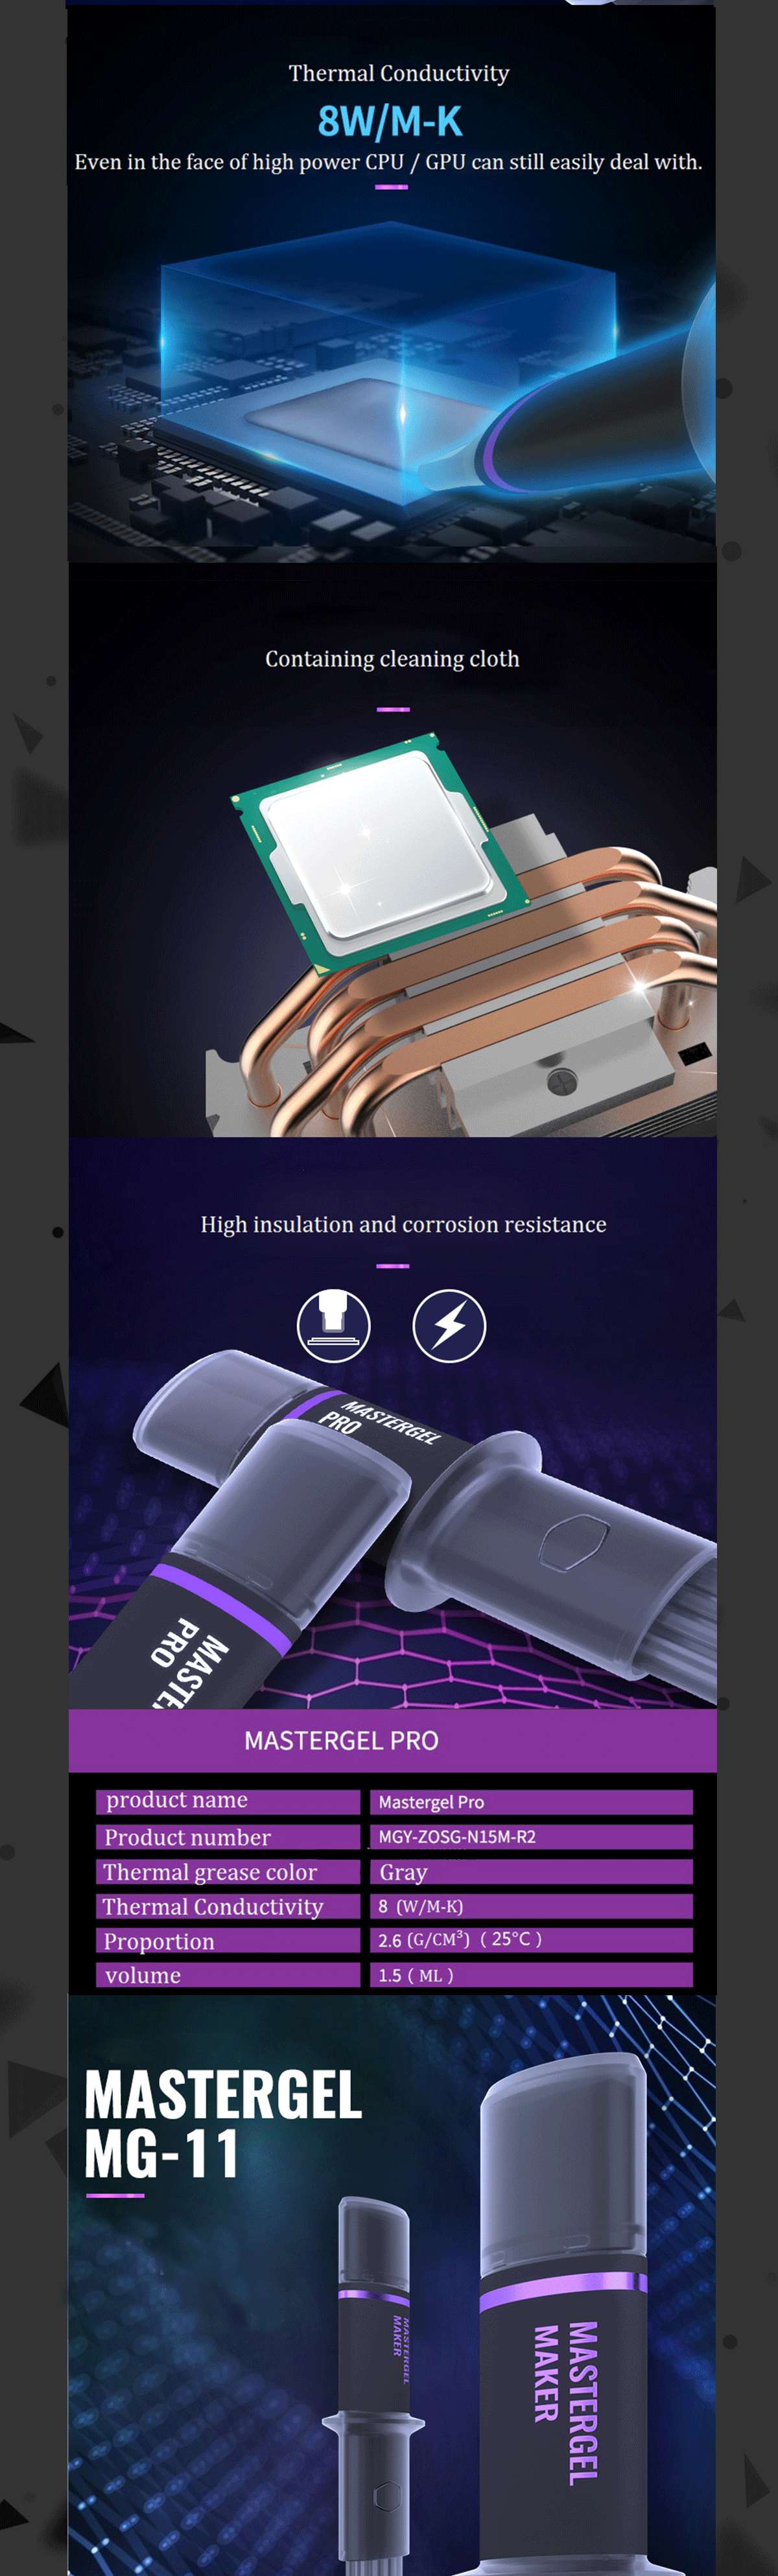 Cooler Master Mastergel High Performance Thermal Grease, Paste Compound Silicone Flat Nozzle, Precise And Even, High Conductivity To Aid Heat Transfer MG-5 MG-8 MG-11